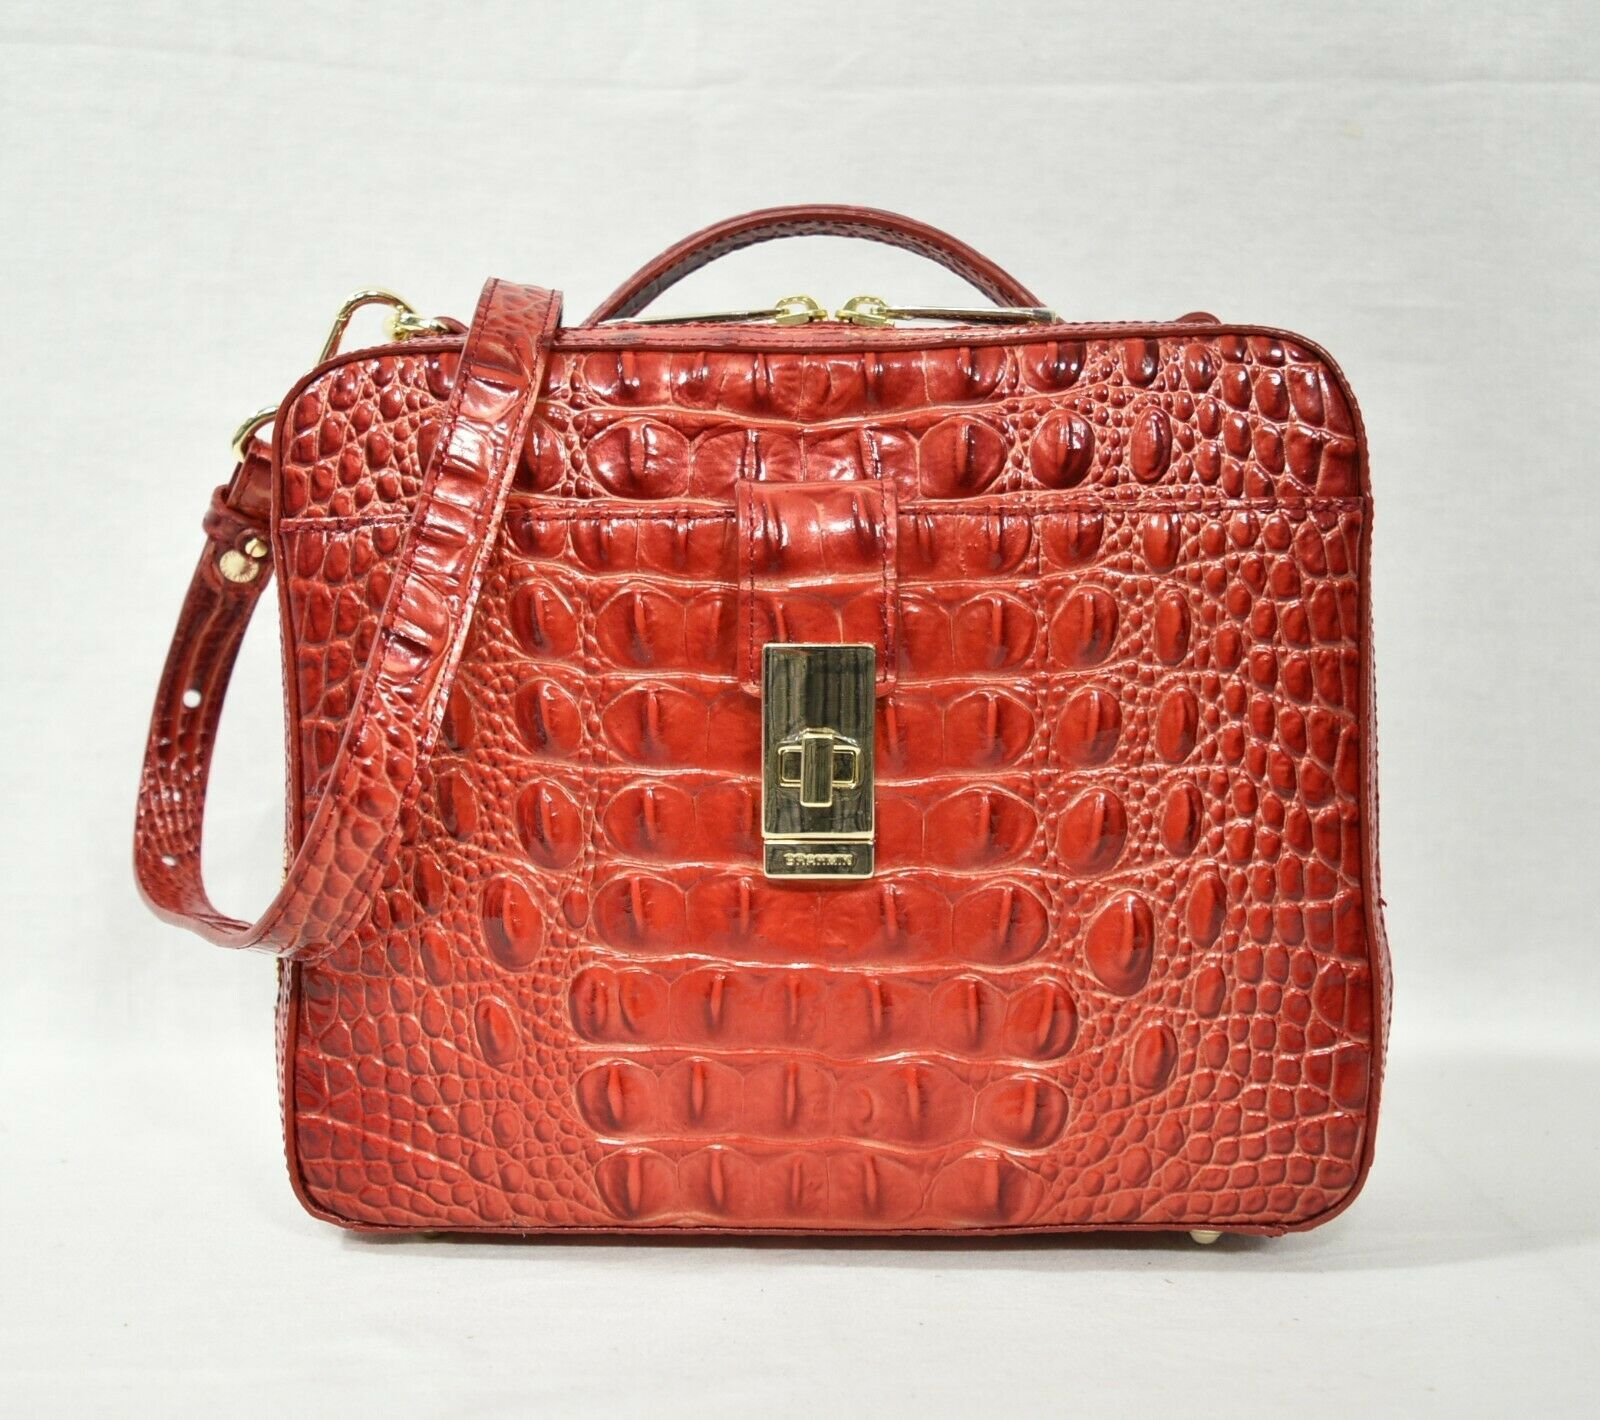 Primary image for NWT Brahmin Evie Leather Satchel/Shoulder Bag in Lava Melbourne